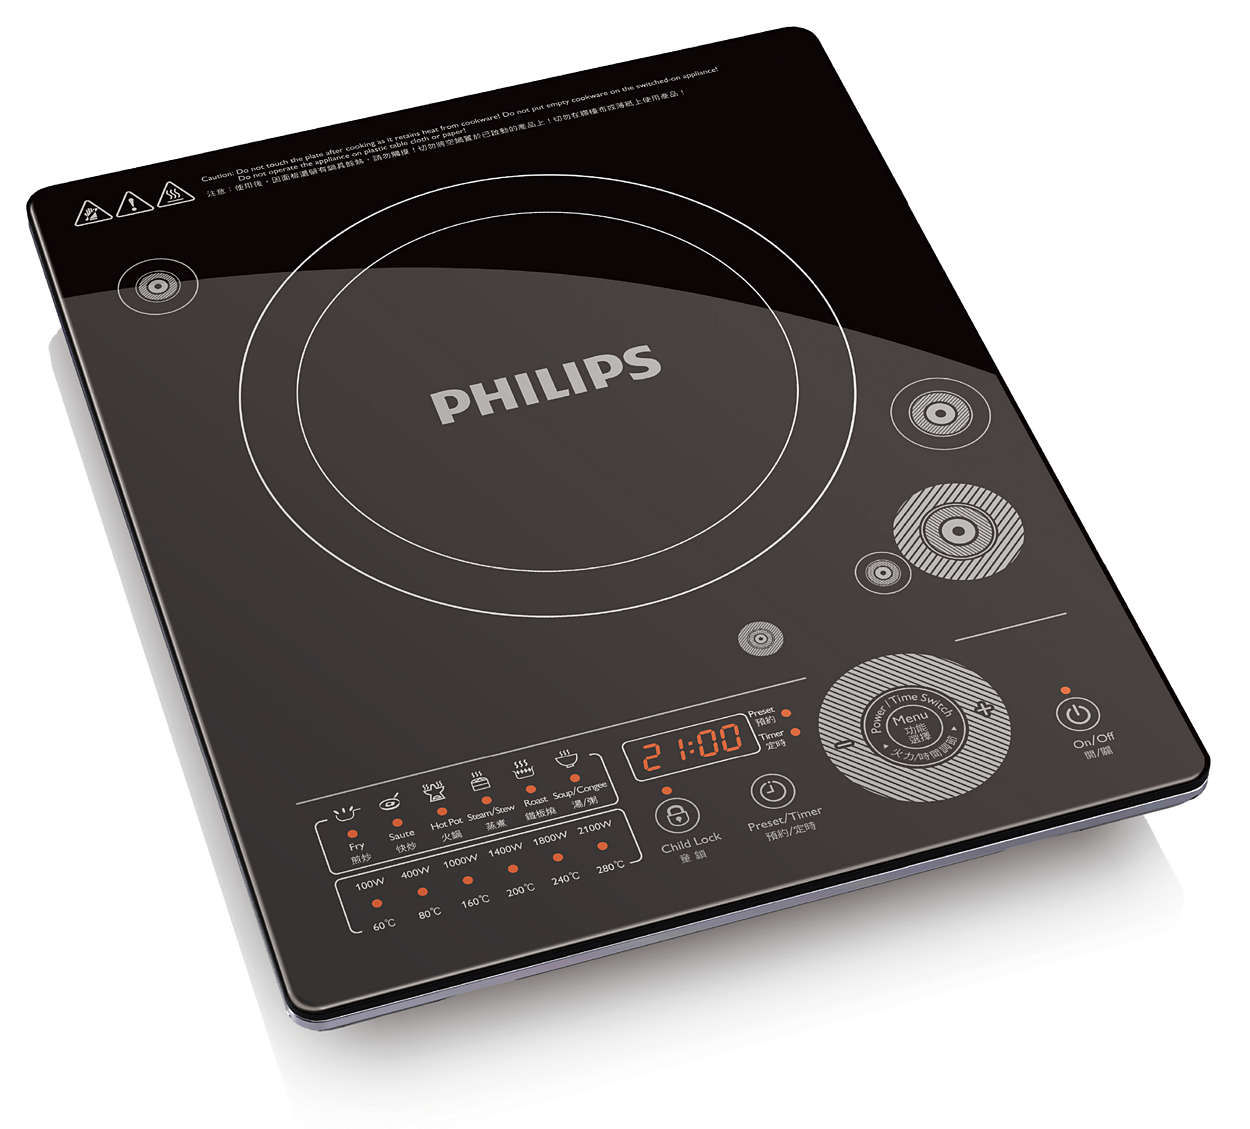 induction cooker hd4991 52 philips. Black Bedroom Furniture Sets. Home Design Ideas